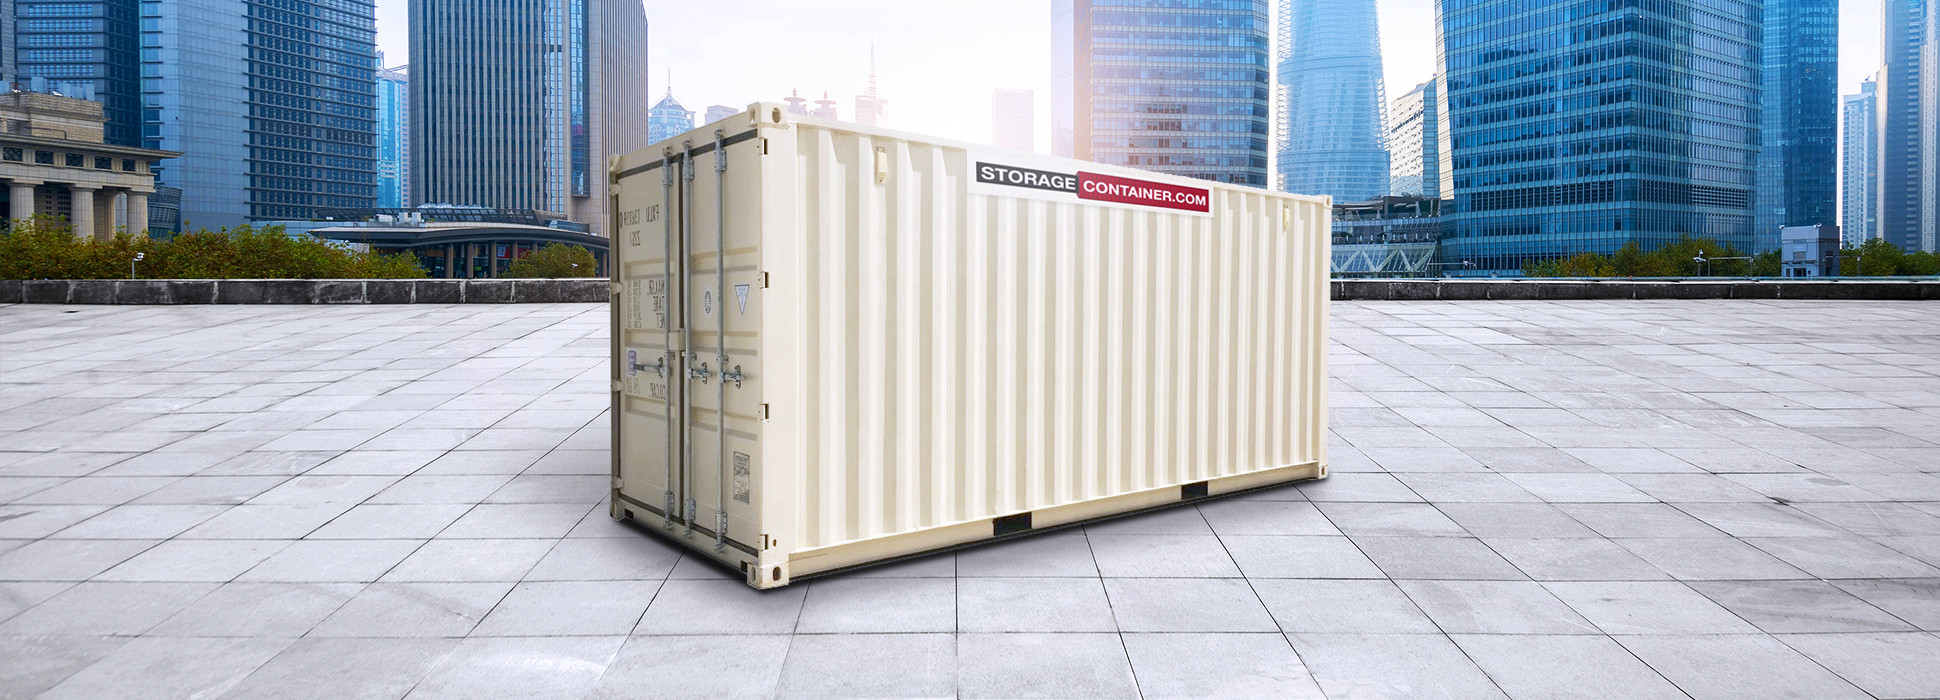 Storagecontainer.com Frequently Asked Questions